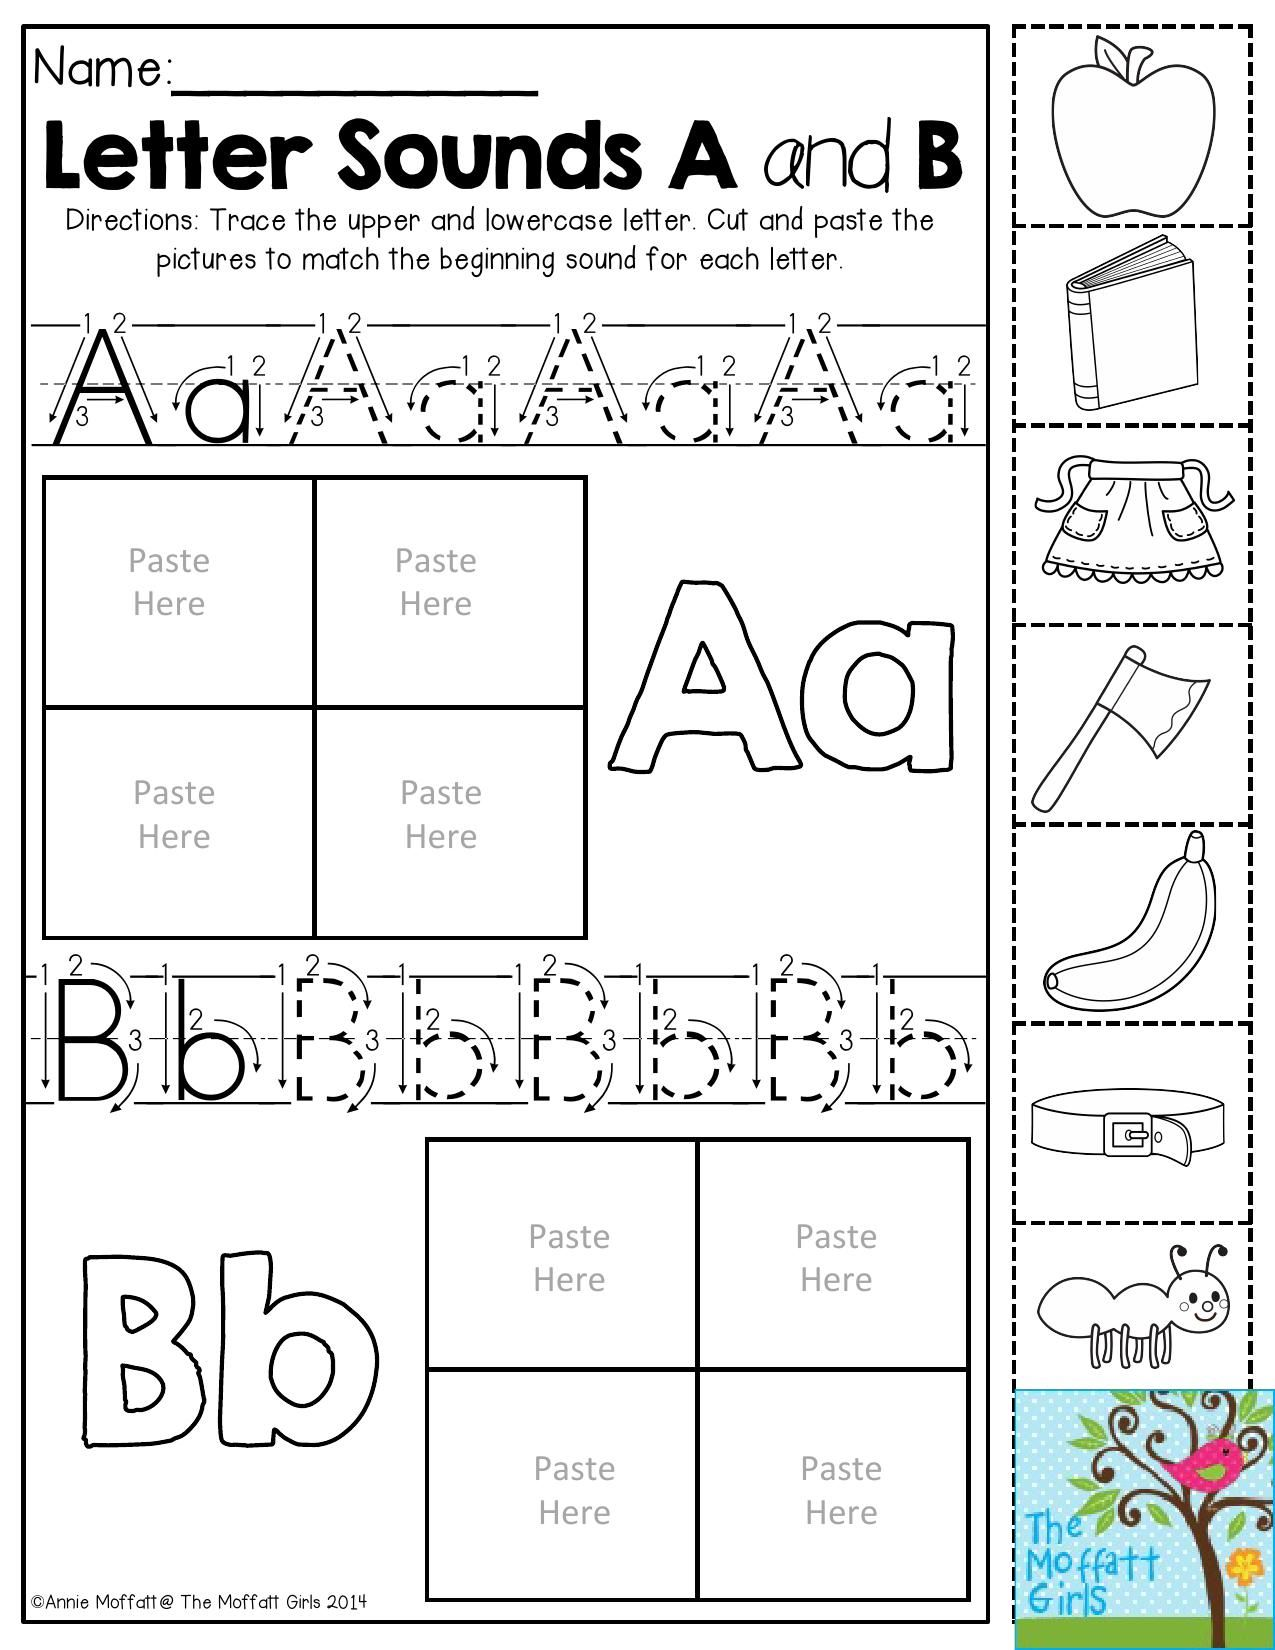 Letter Sounds Trace The Letters Then Cut And Paste The Pictures To